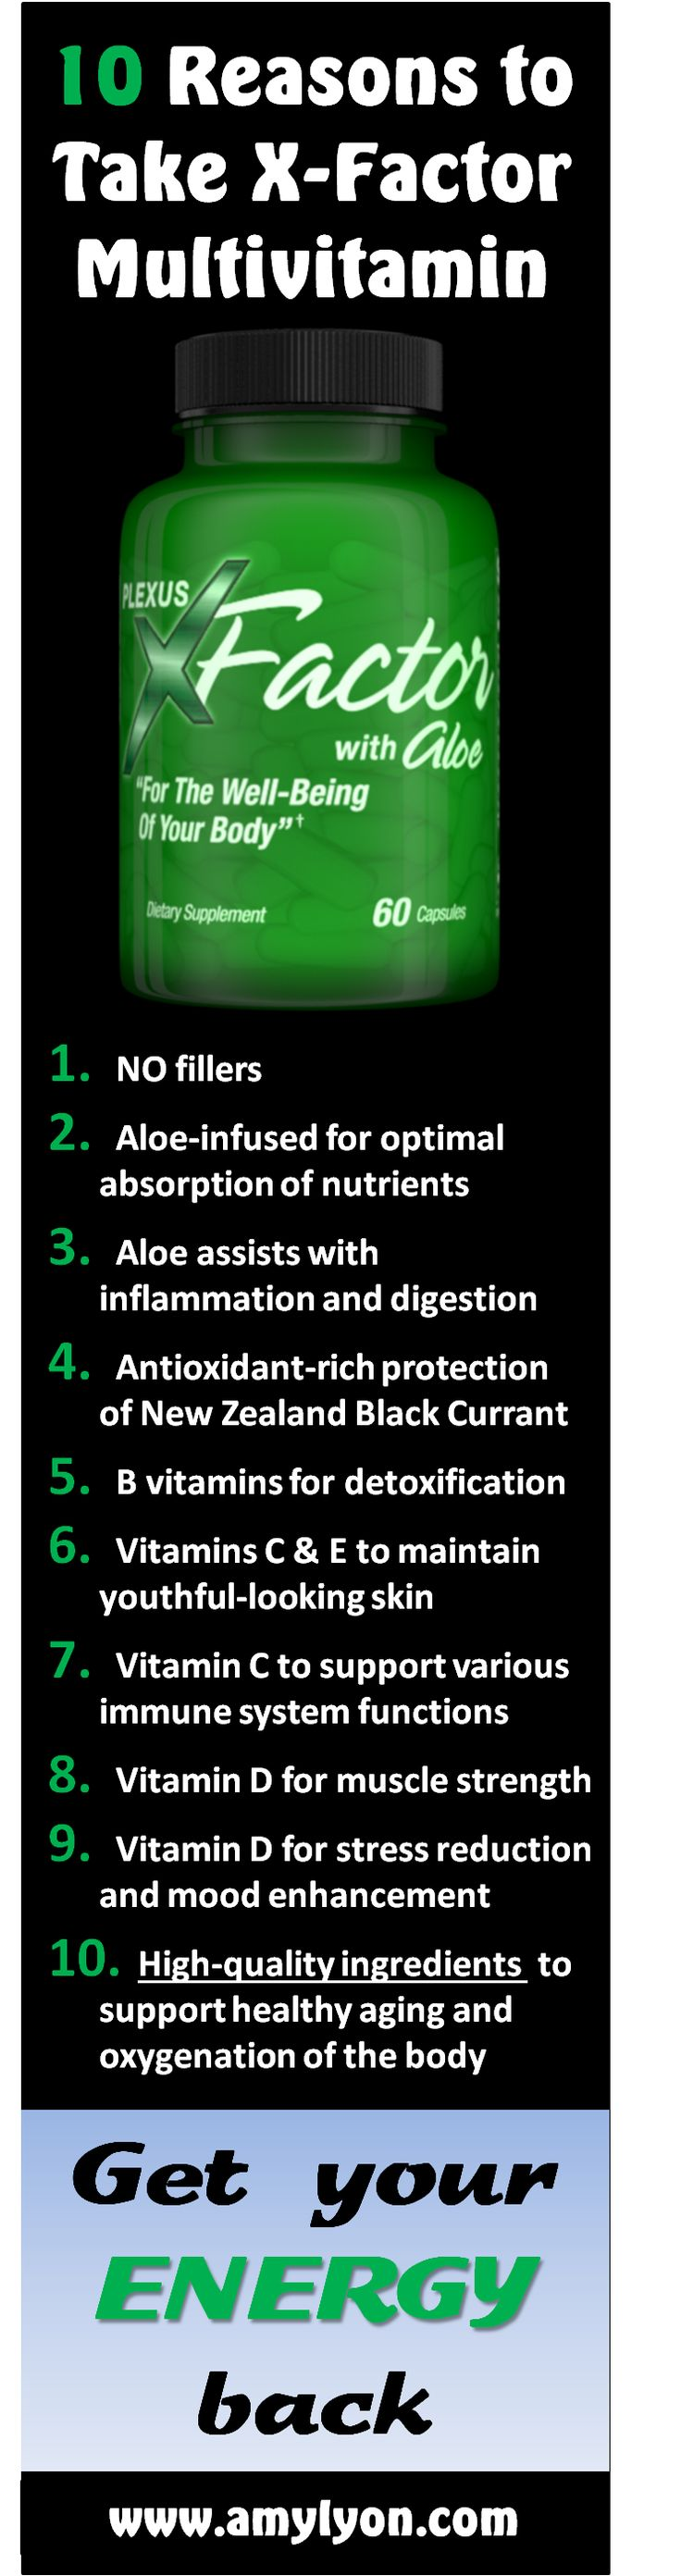 Plexus XFactor is a turbocharged daily multivitamin and antioxidant. 100% natural and no fillers! View the ingredient label at http://www.amylyon.myplexusproducts.com/products/plexus-xfactor I LOVE MY XFACTOR ENERGY!